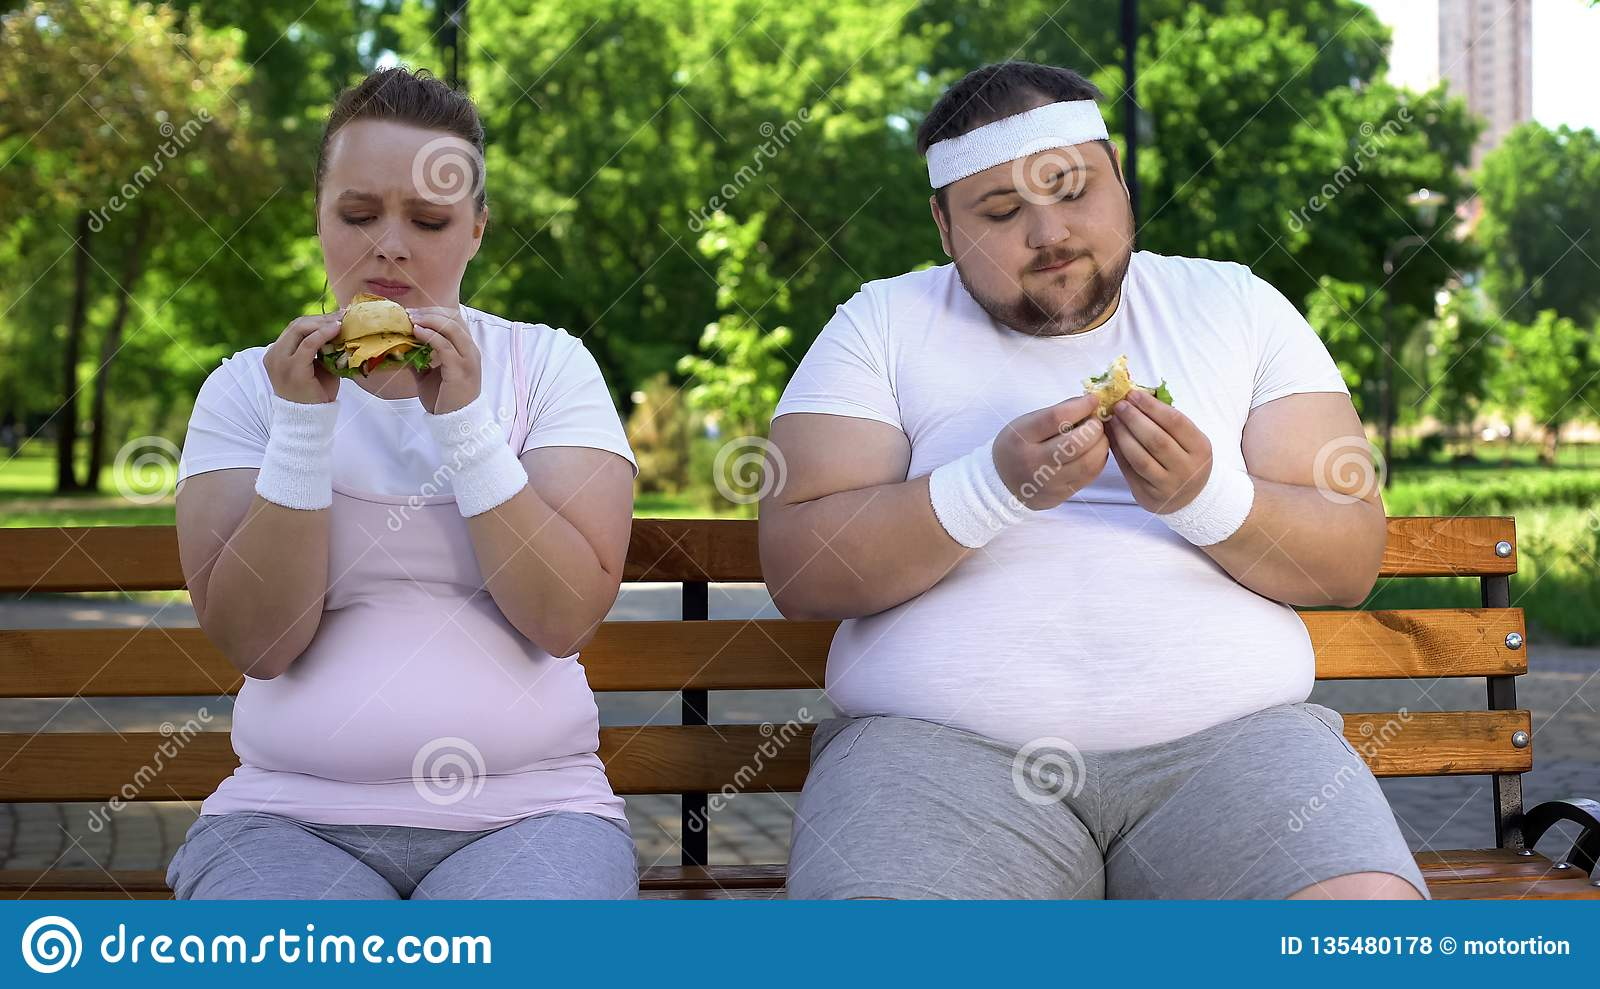 Images Of Fat Couples Jpg